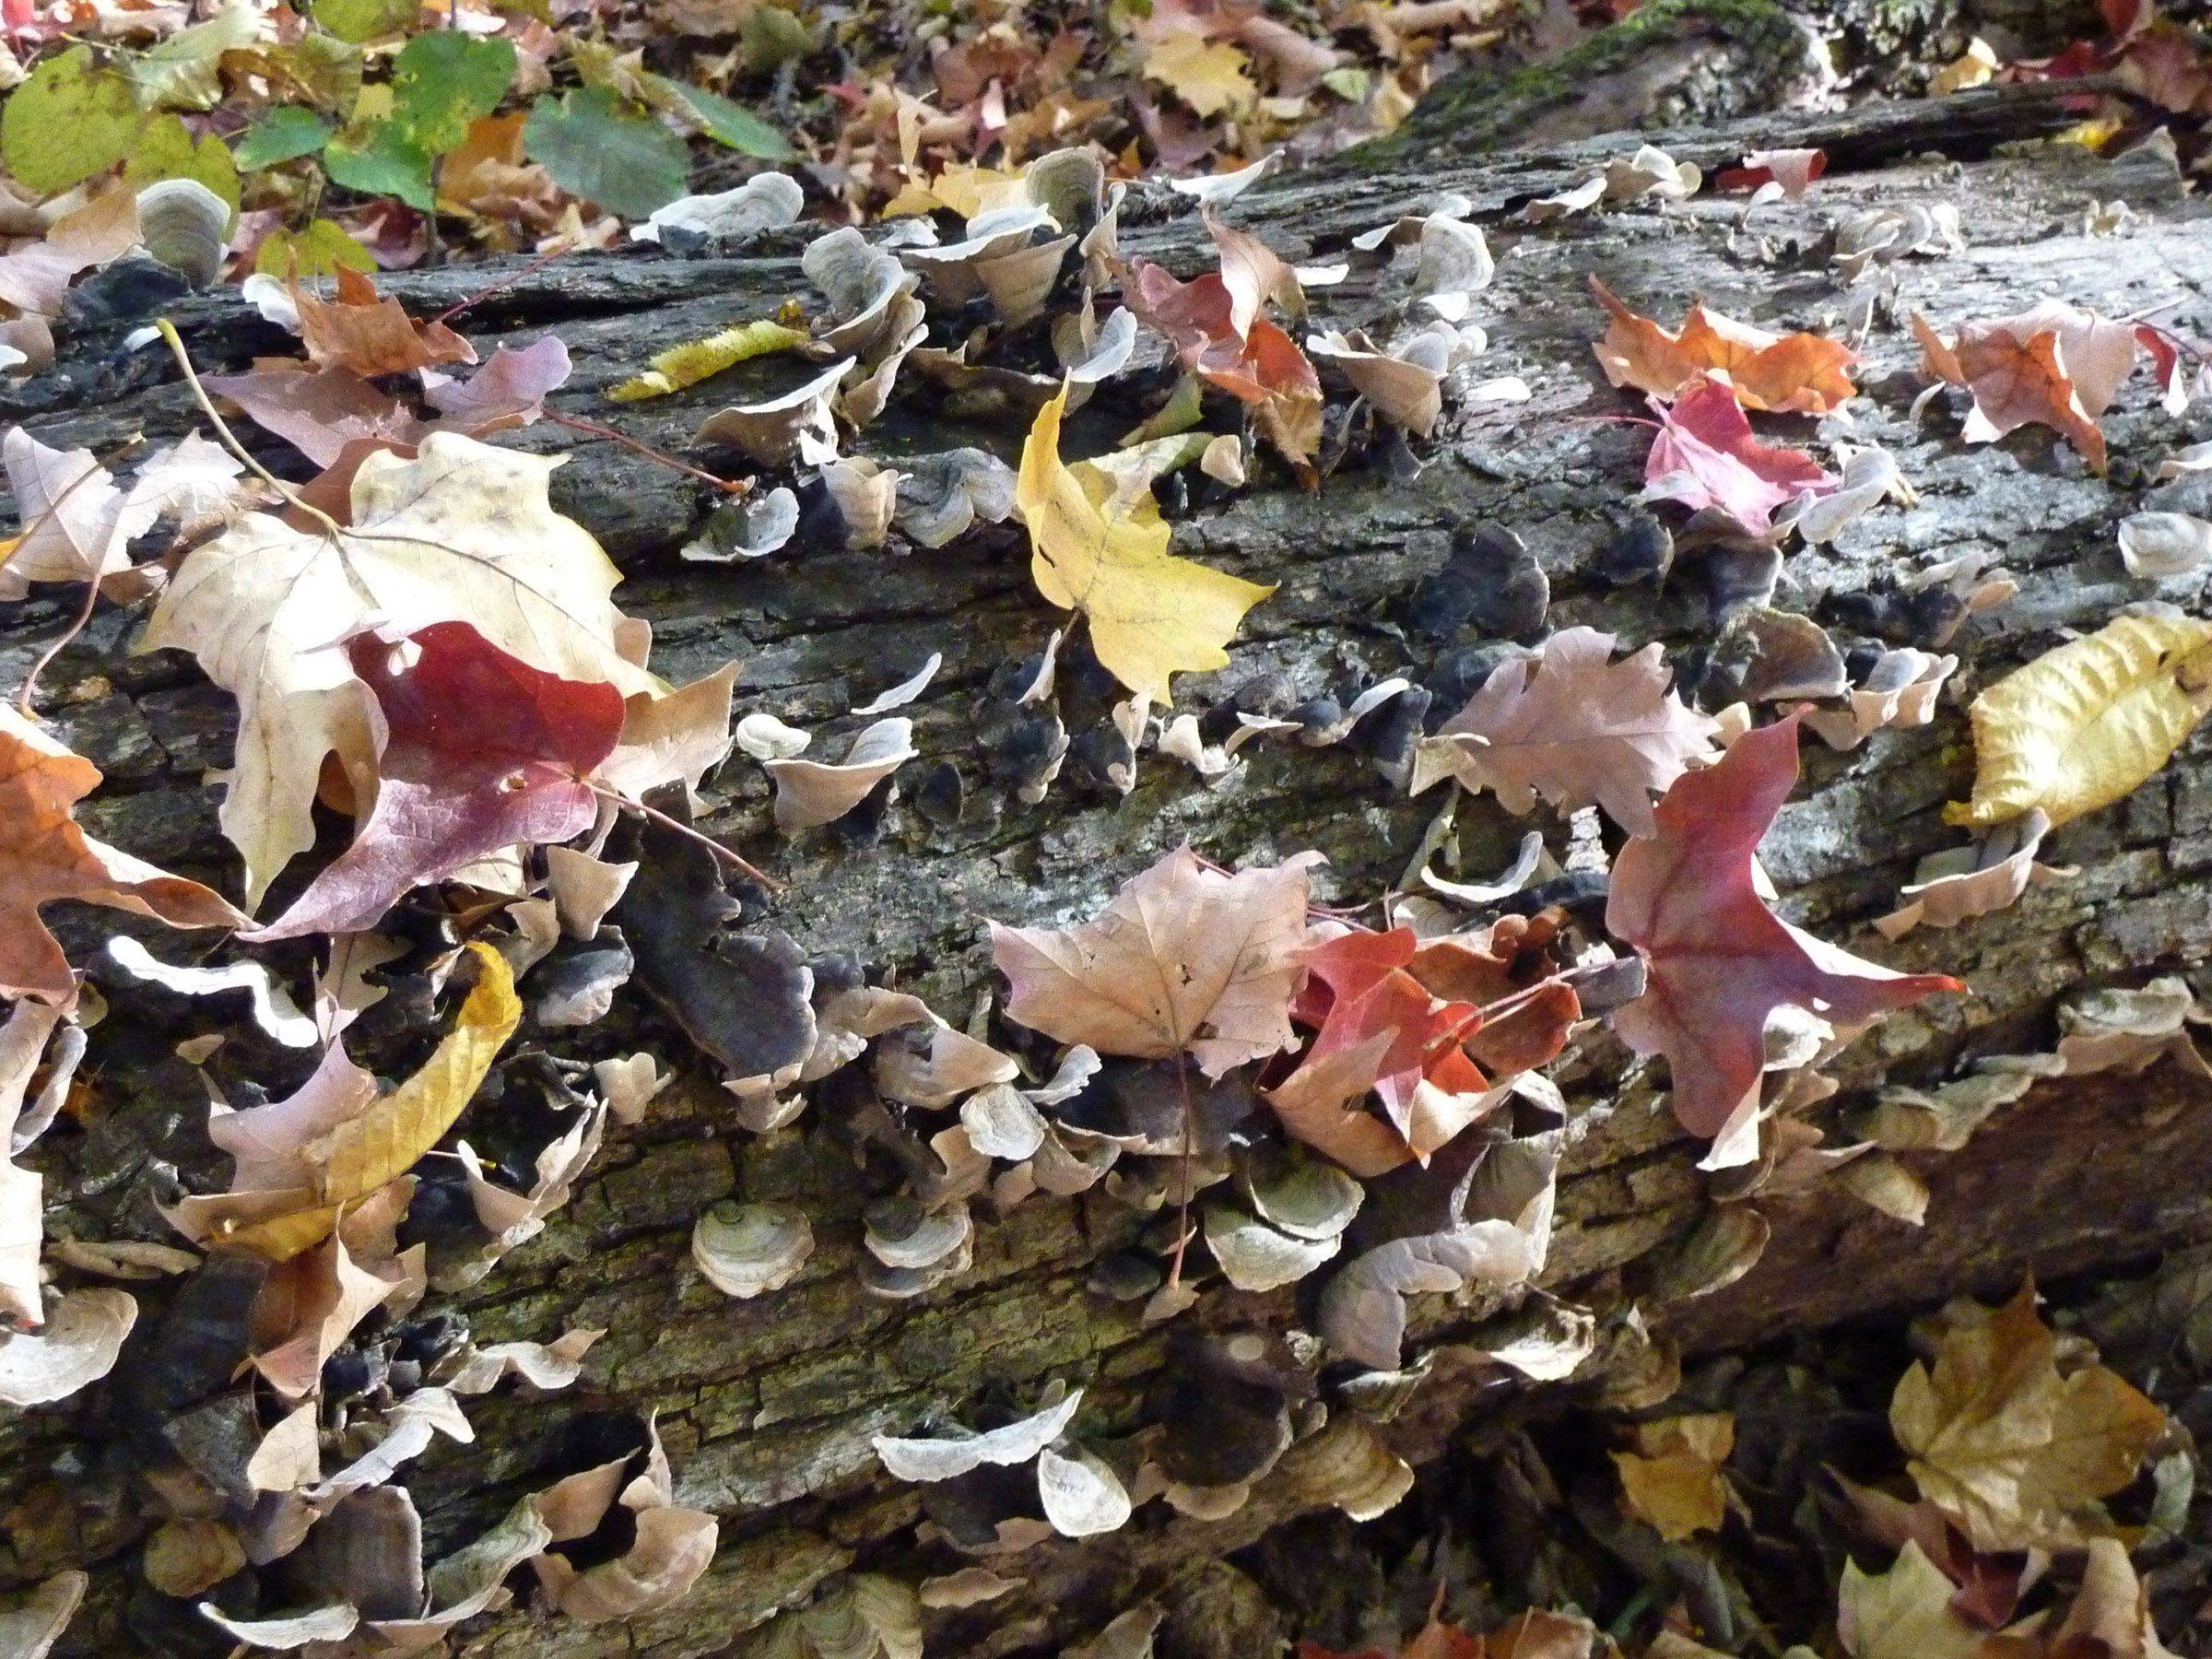 This is a colorful collection of fall leaves and fungus on a log in Meacham Grove Forest Preserve.